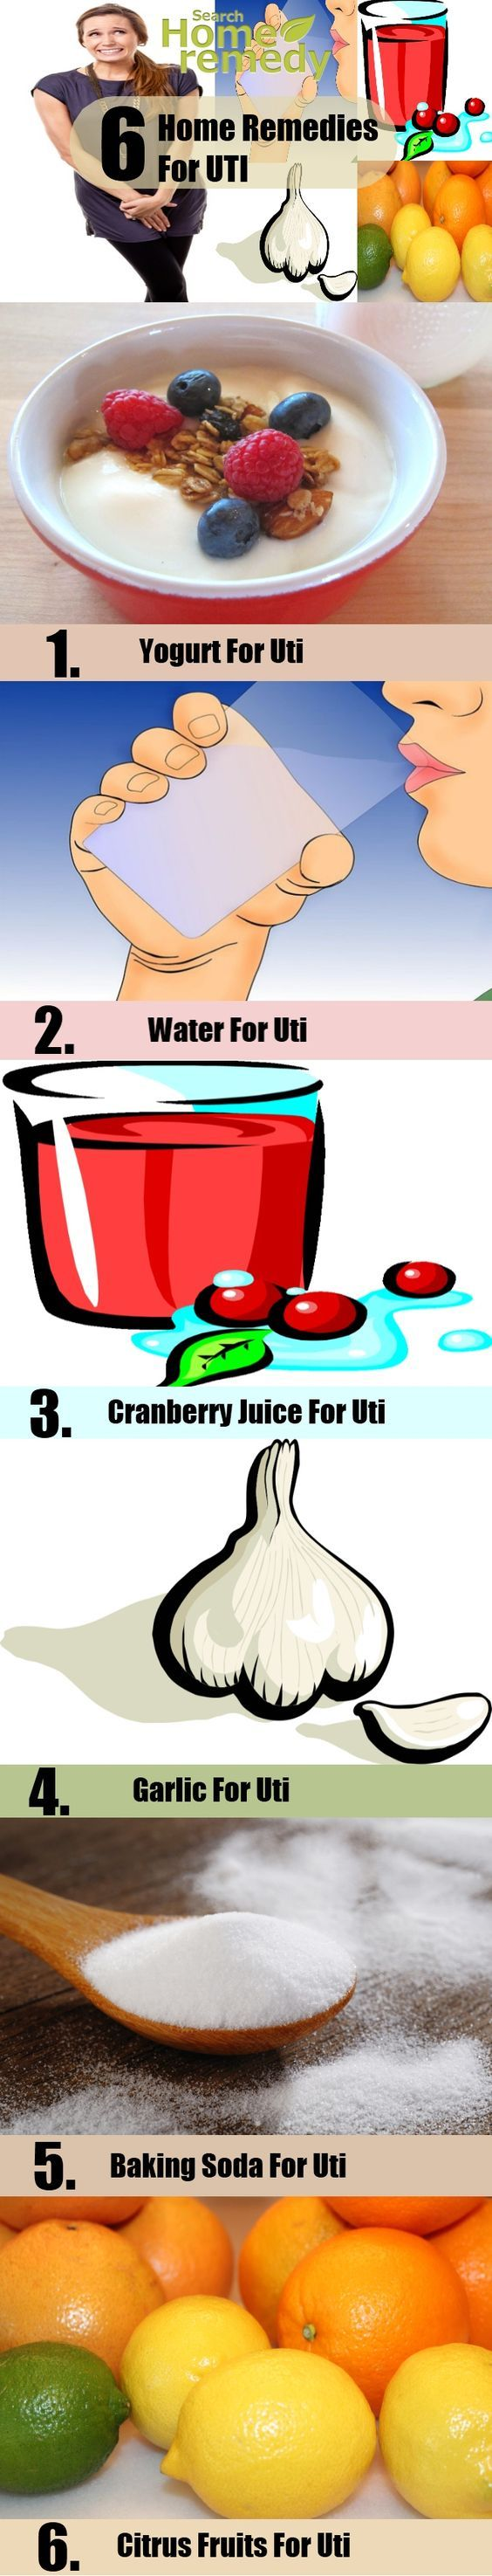 how to clean urinary tract naturally